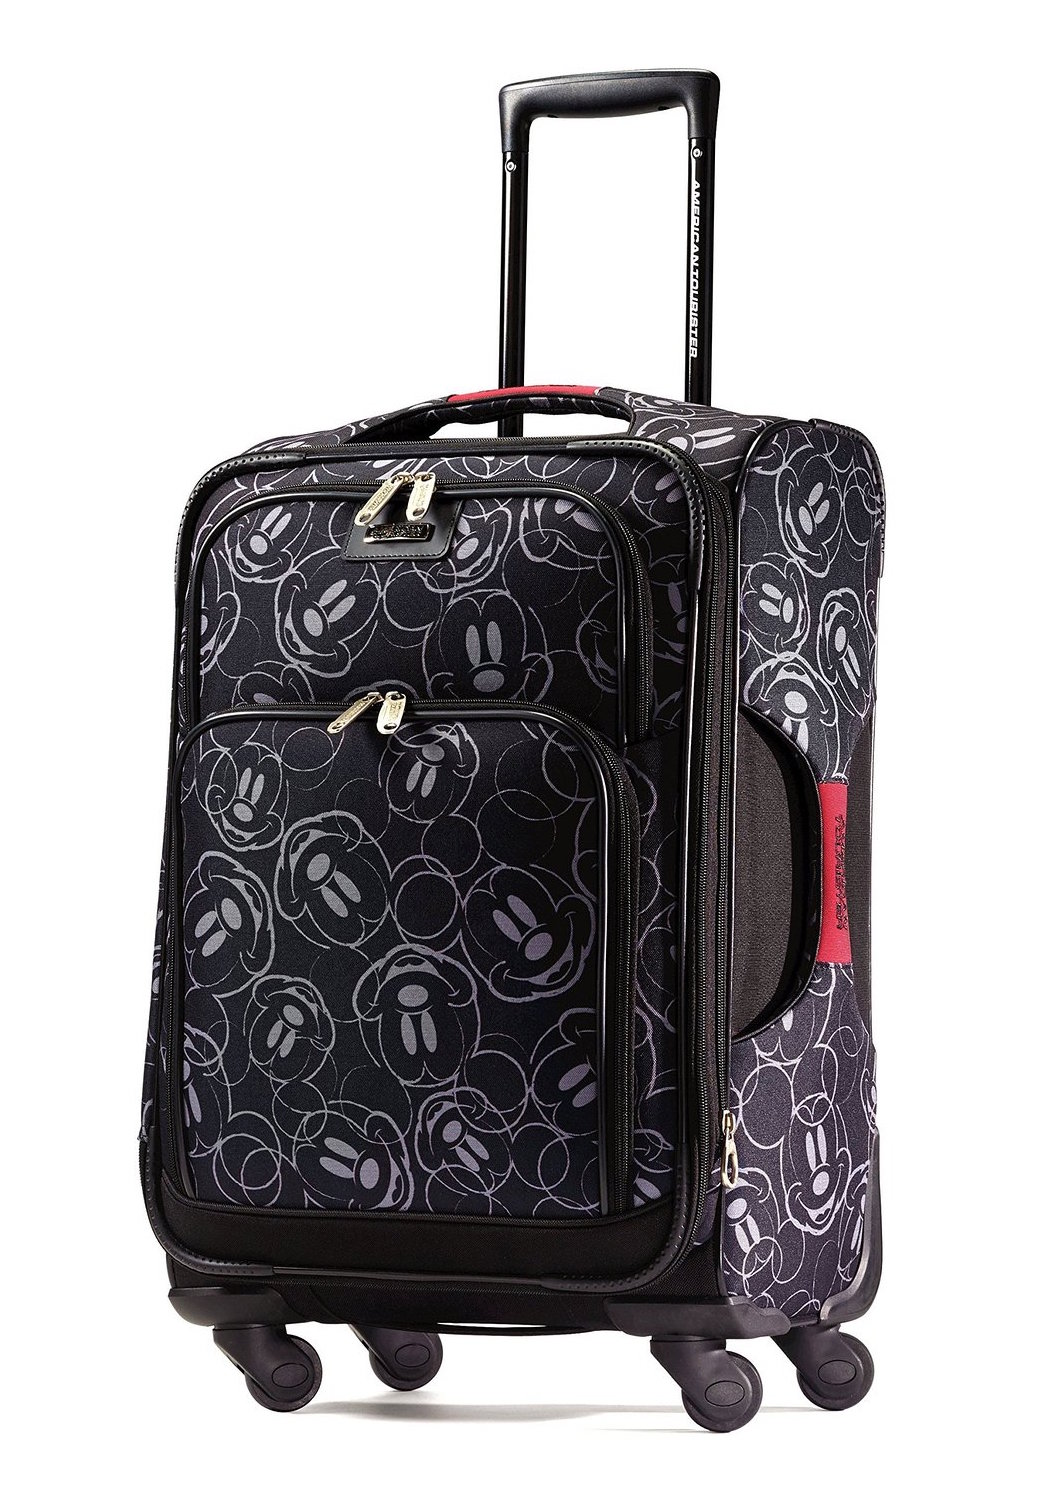 American Tourister Disney Mickey Mouse spinner carry-on luggage